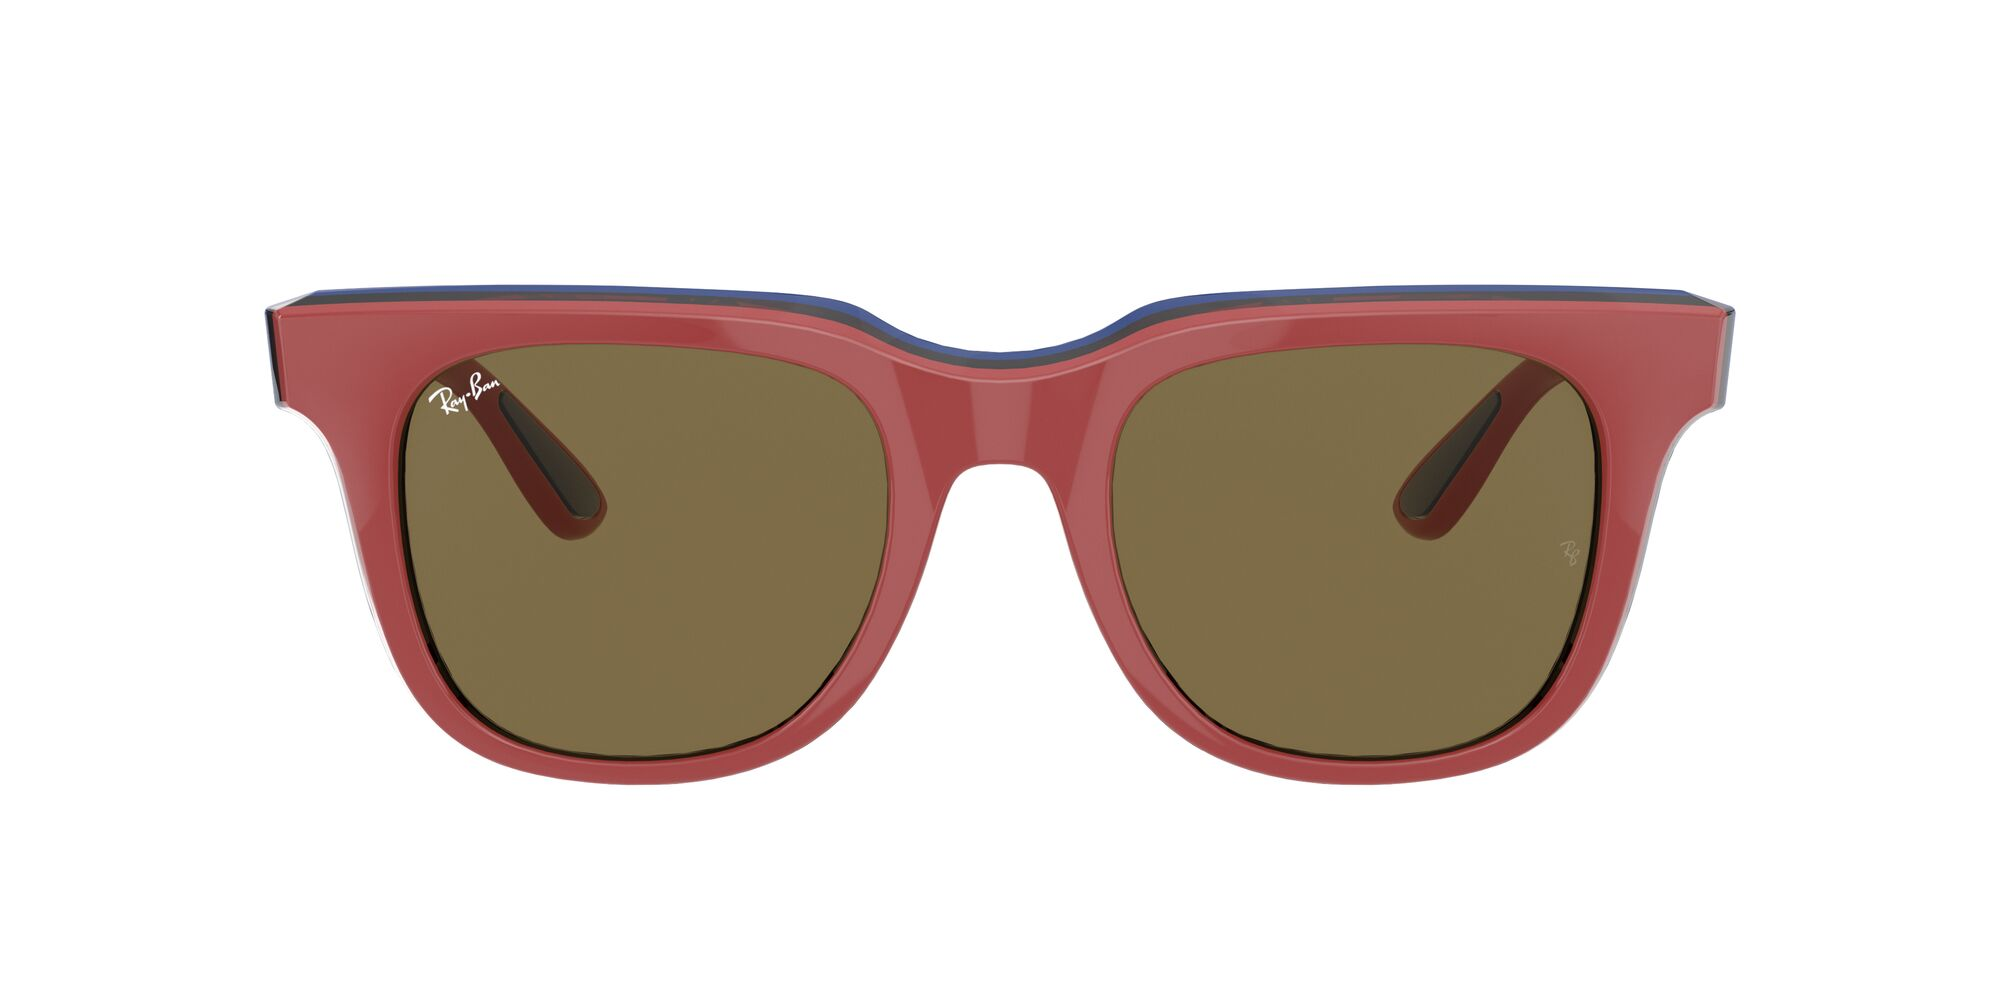 Front Ray-Ban Ray-Ban 0RB4368 652273 0/21 Rood/Bruin